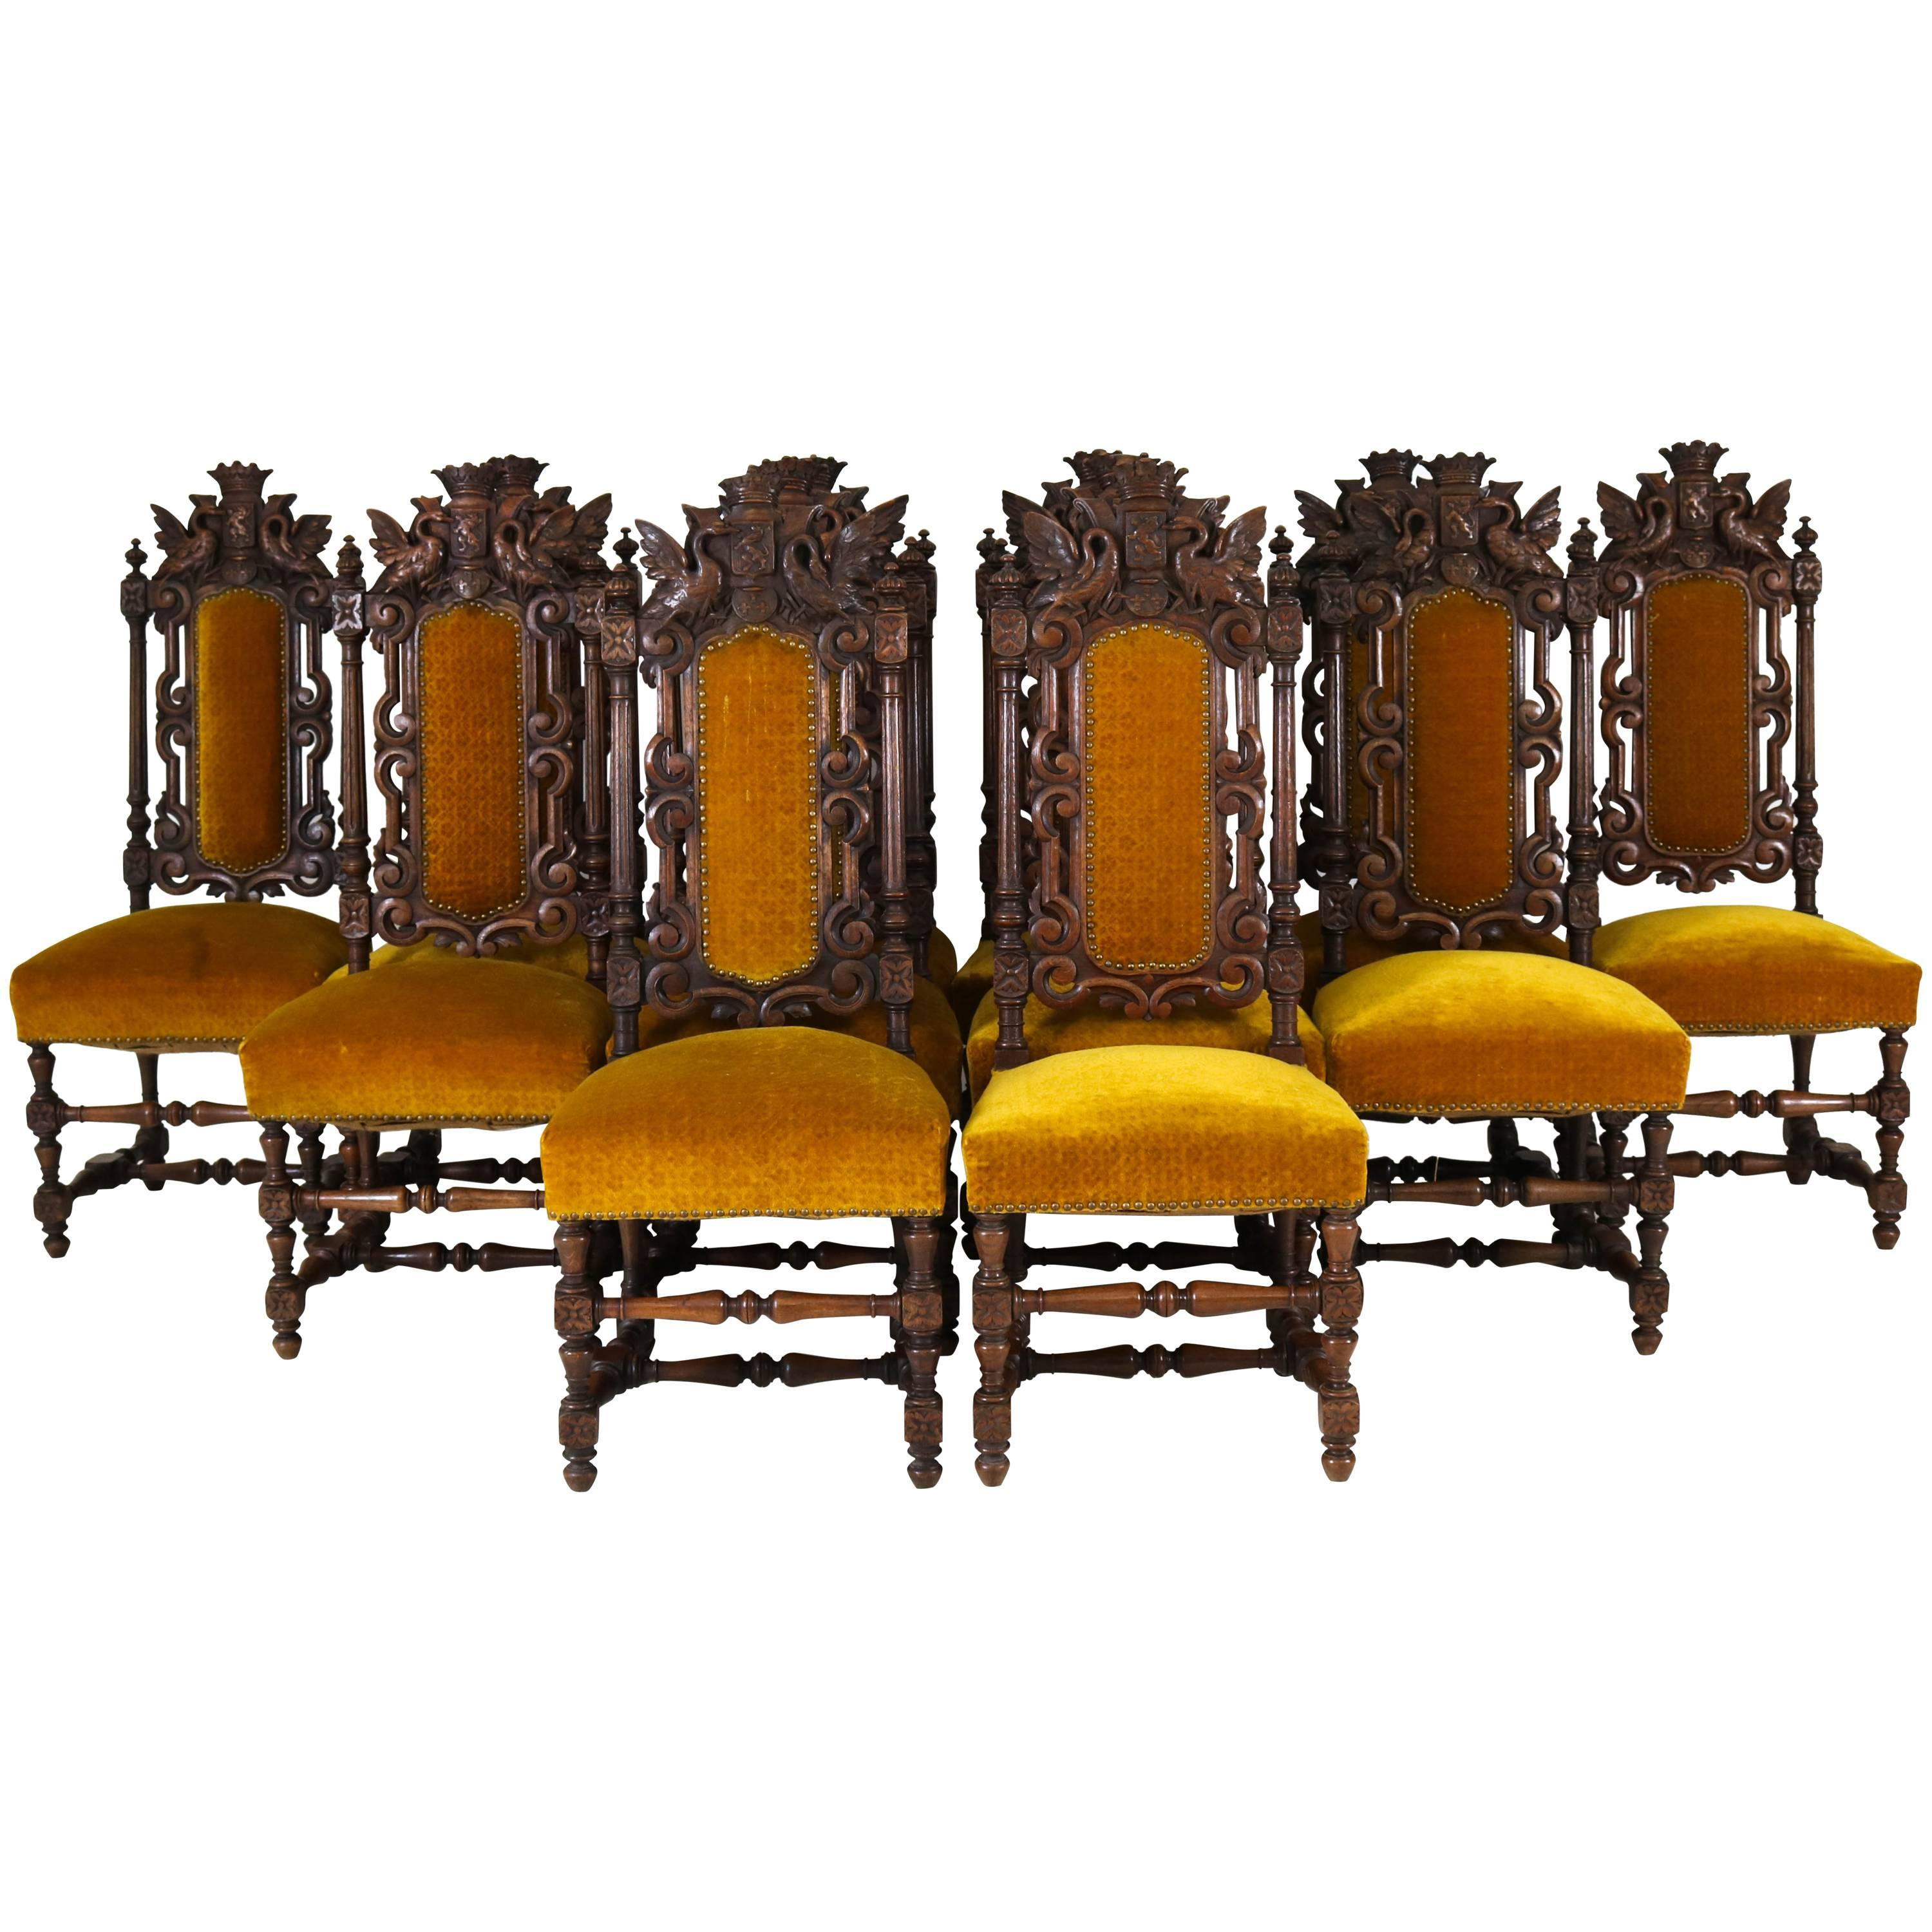 Bon Twelve Solid Oak 19th Century Renaissance Revival Hand Carved Chairs With  Crowns For Sale